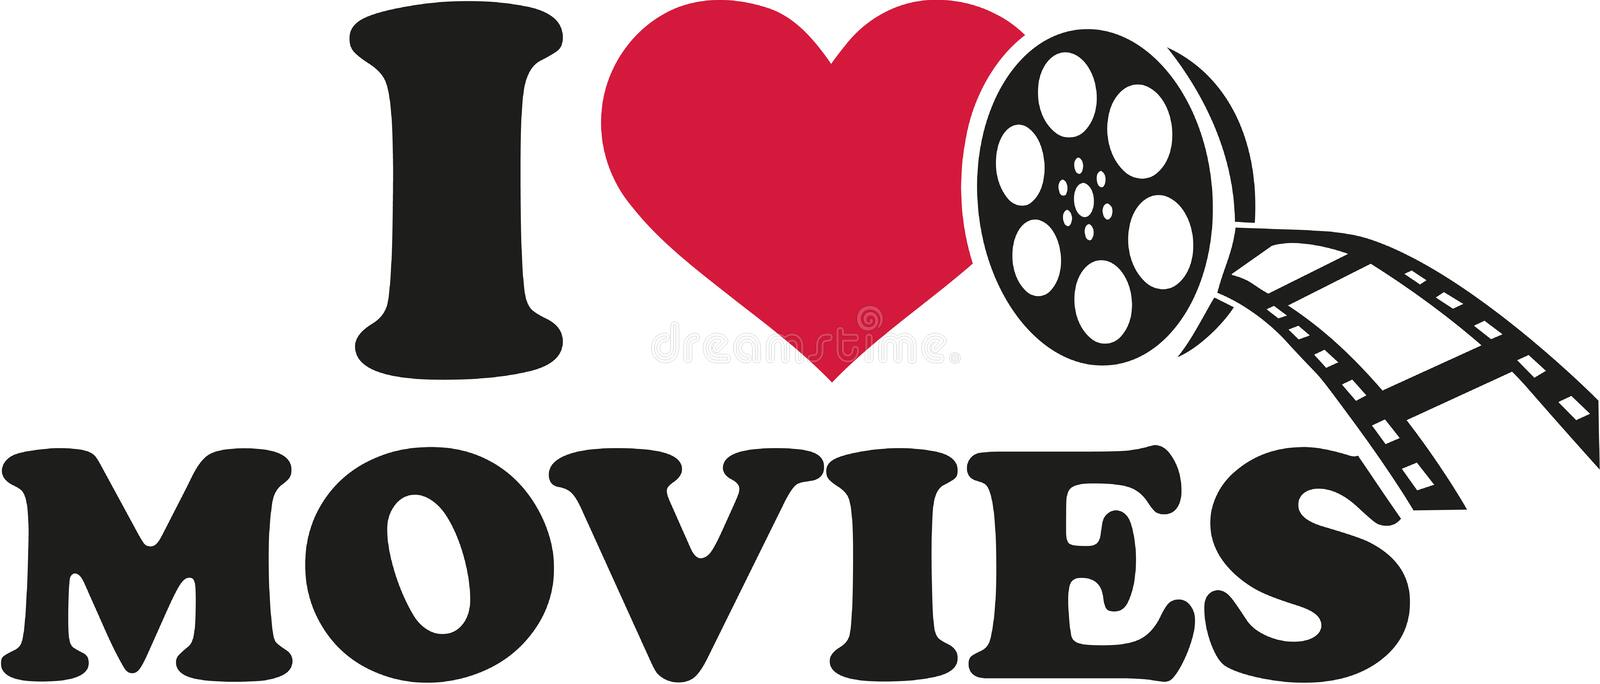 I love movies with film roll stock illustration